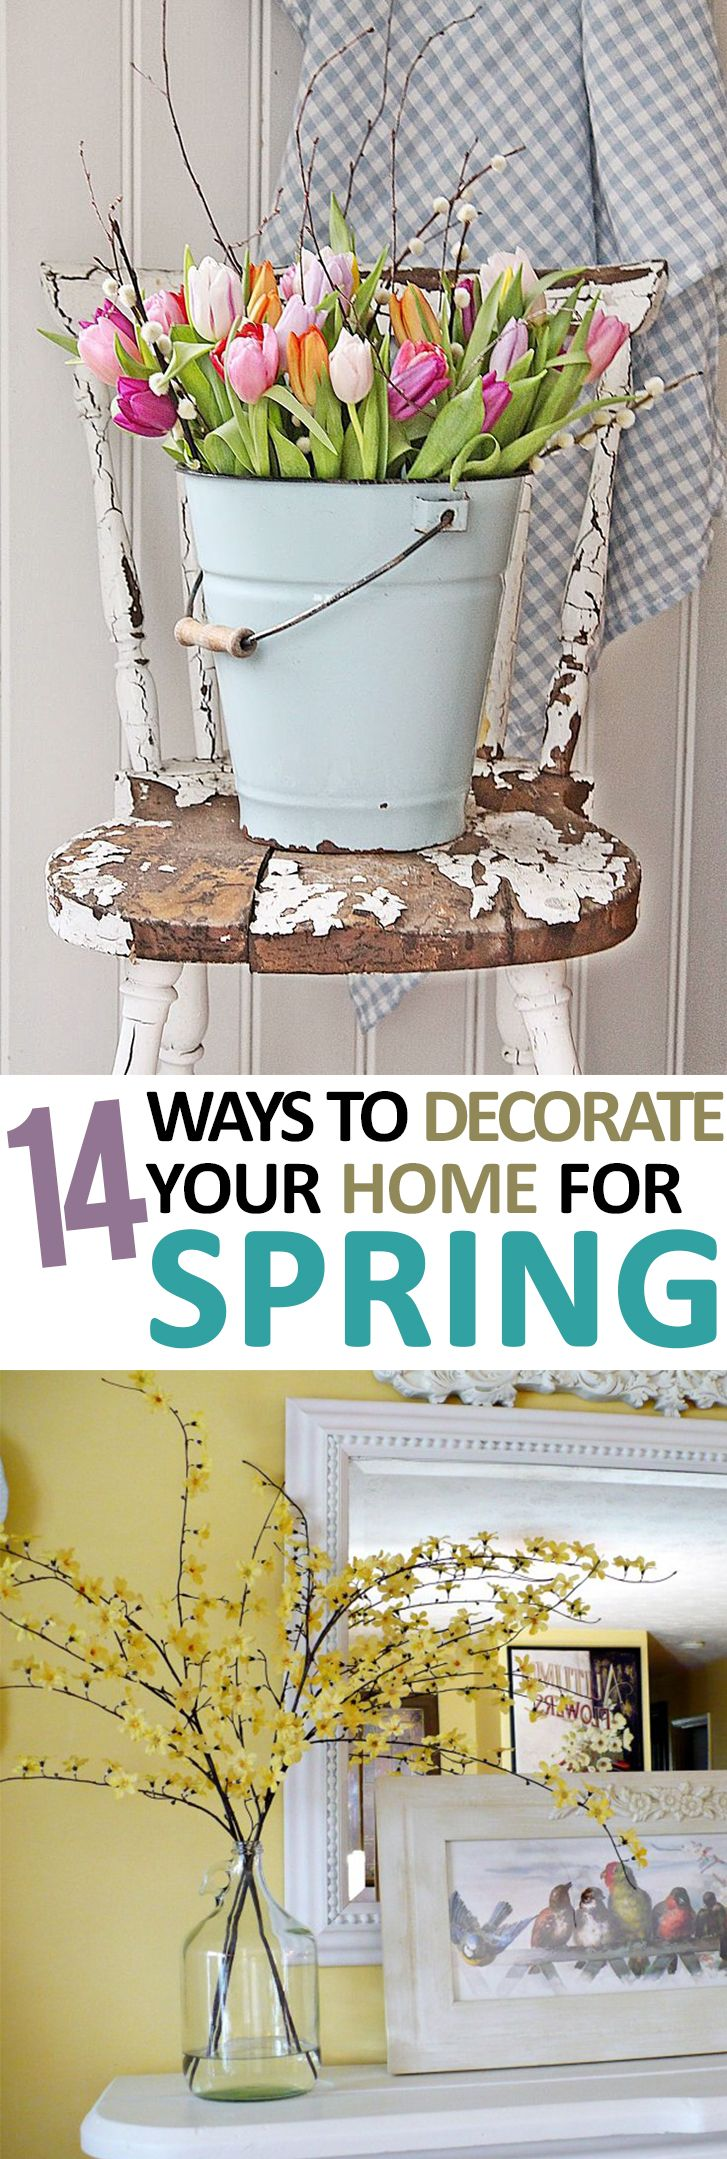 25 Best Ideas About Spring Home Decor On Pinterest Spring Decorations Spring Kitchen Decor And Easter Holidays 2017